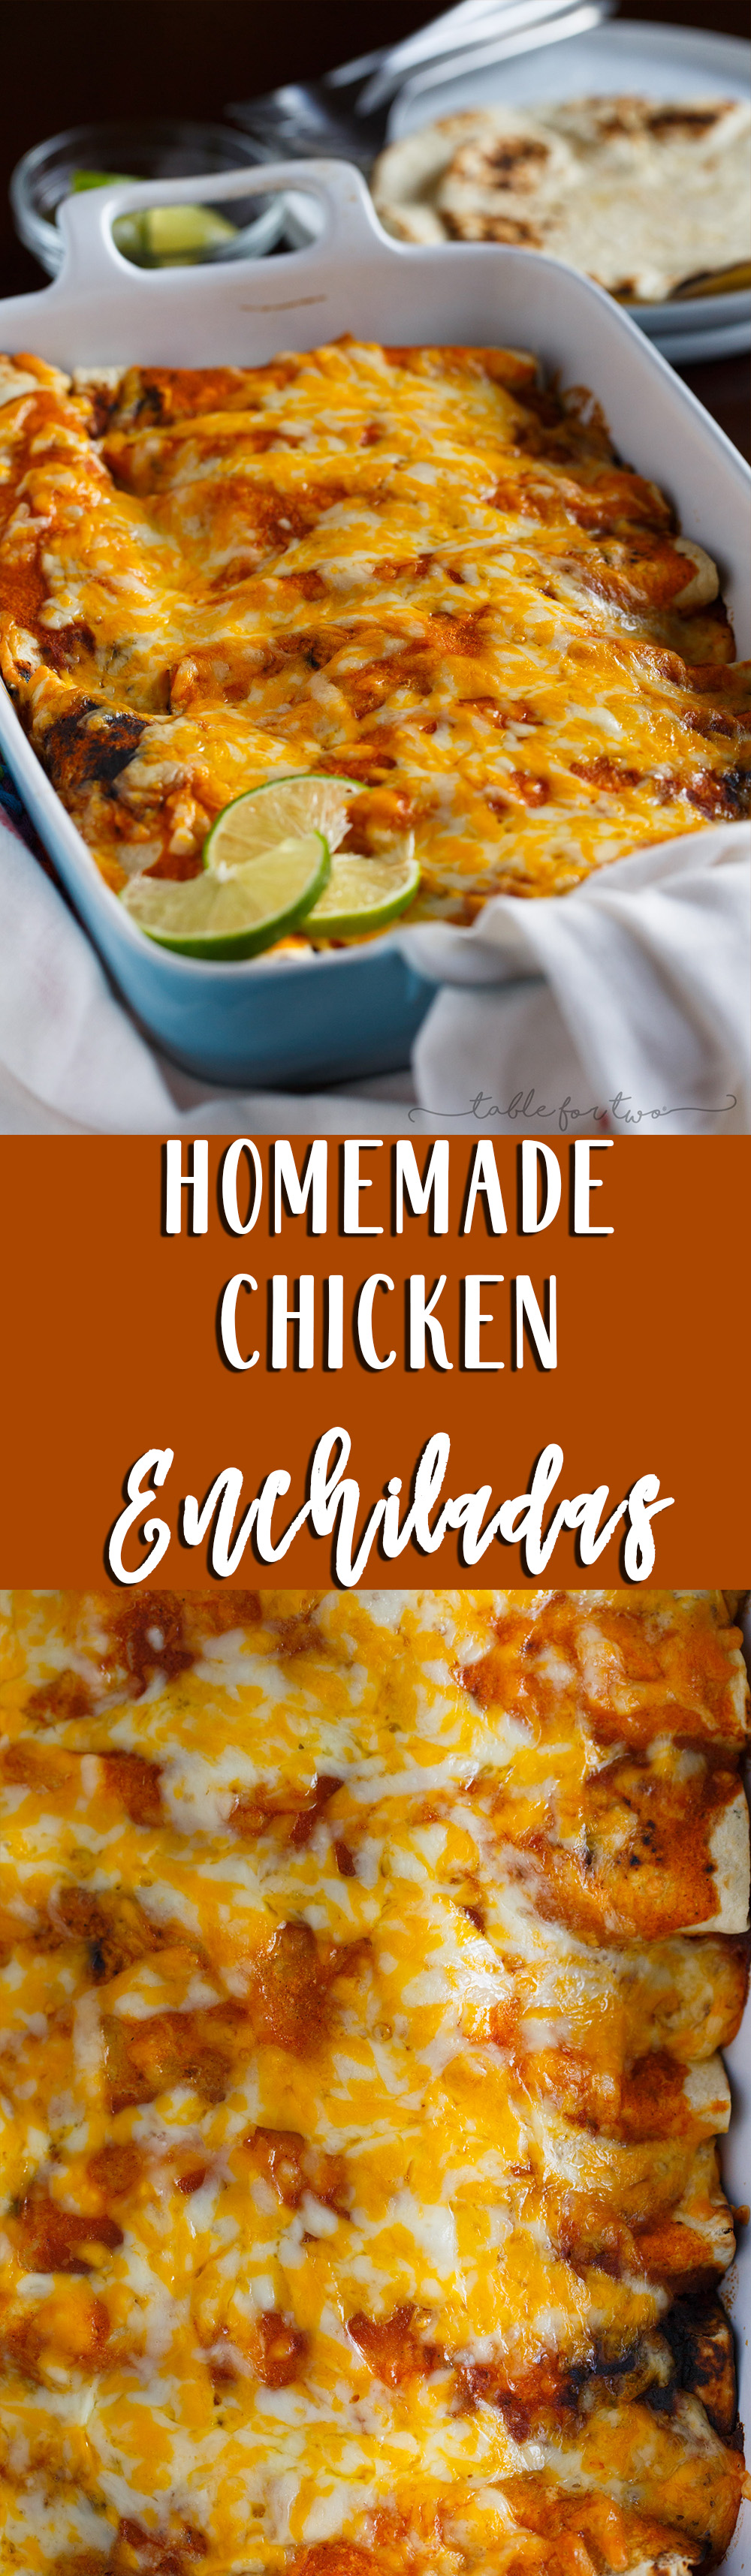 Homemade chicken enchiladas are a great comfort weeknight meal! Paired with a simple blender enchilada sauce, these will be a hit at the dinner table!